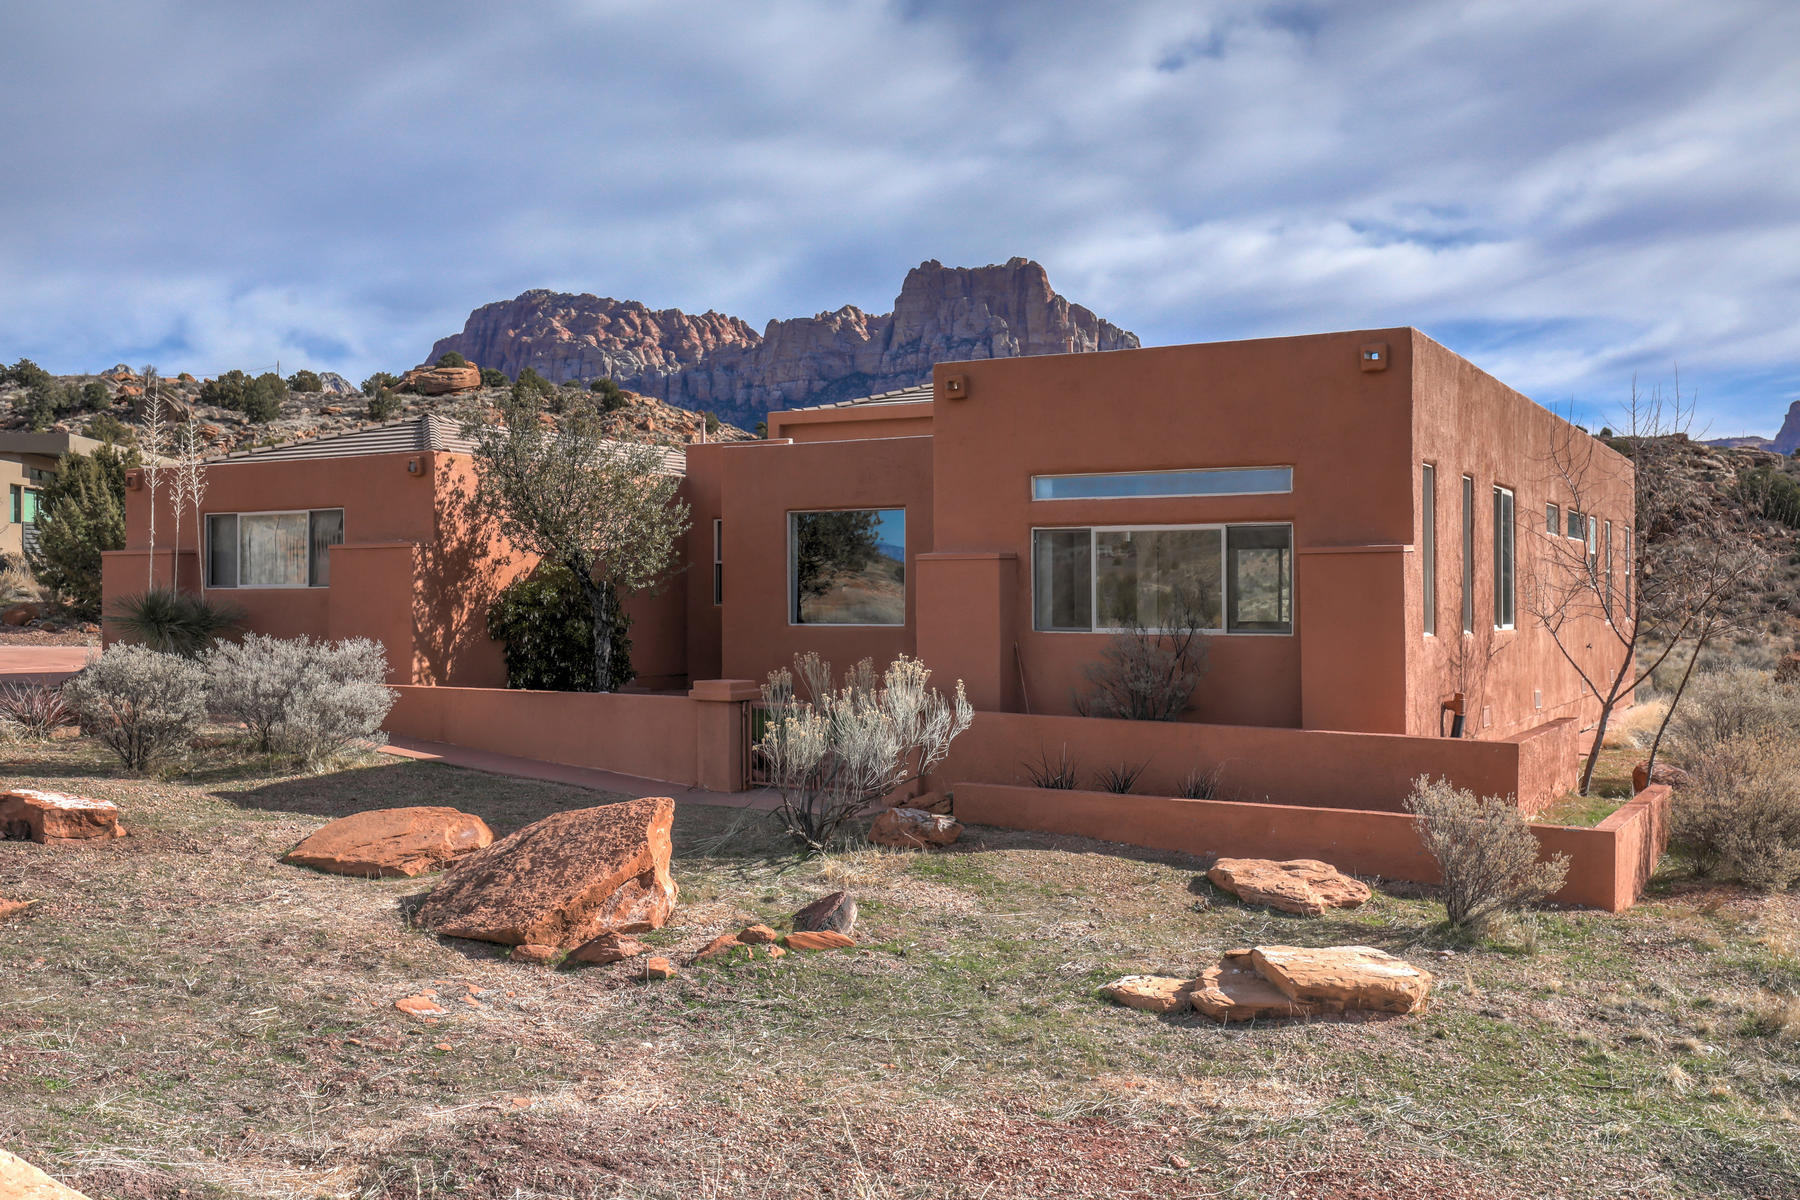 Single Family Homes for Sale at Spacious Southwestern 2 Miles From Zion National Park 2702 Hopi Circle Springdale, Utah 84767 United States